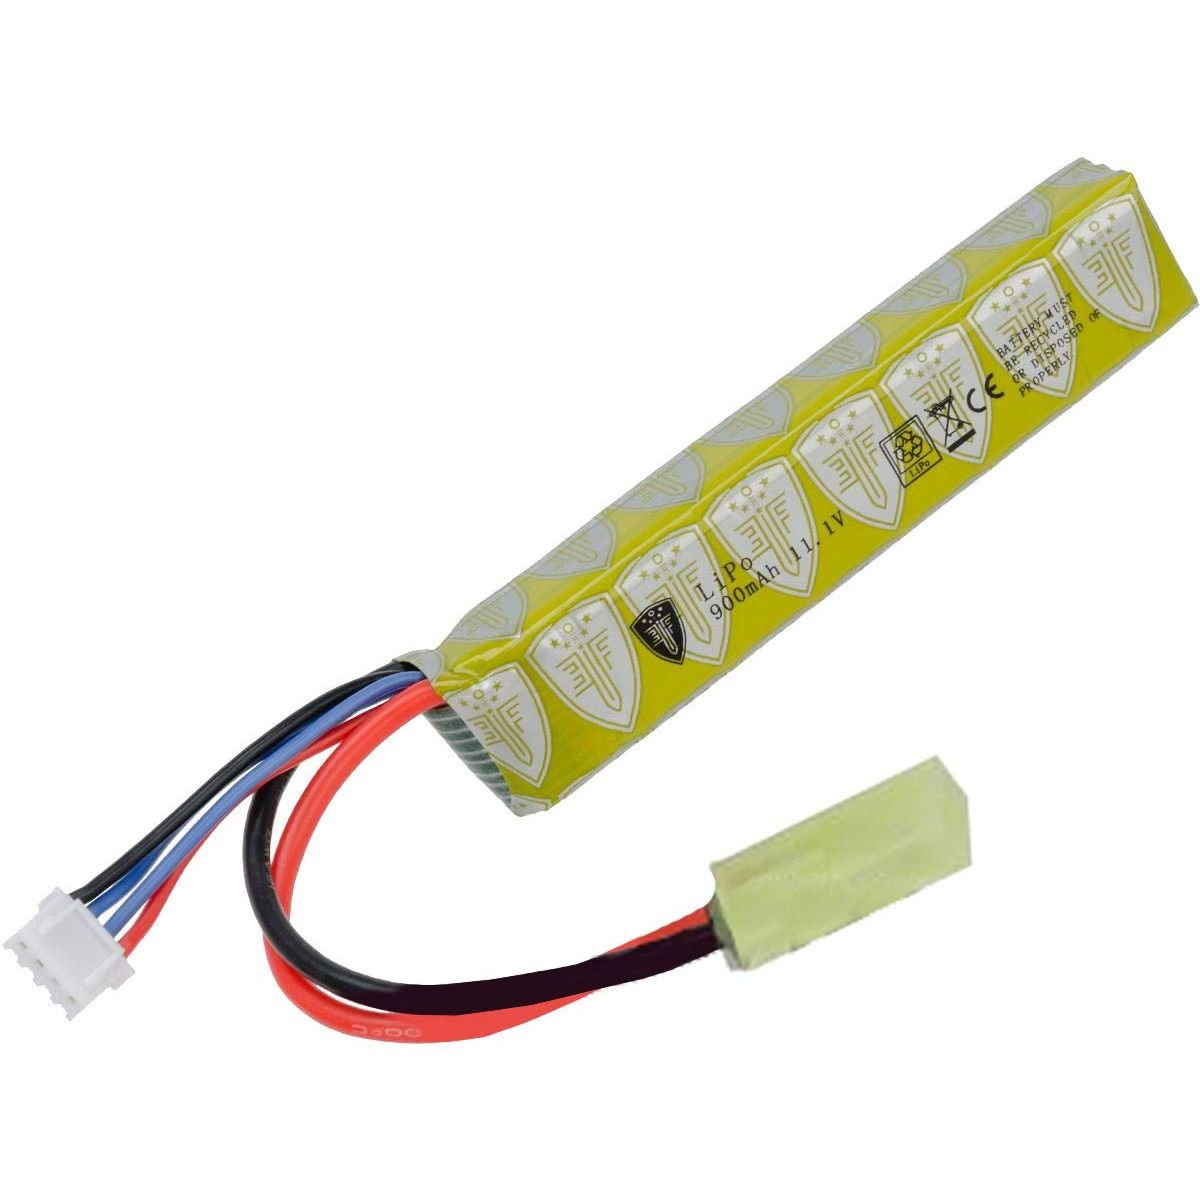 Elite Force 11.1V LiPo 900mAh